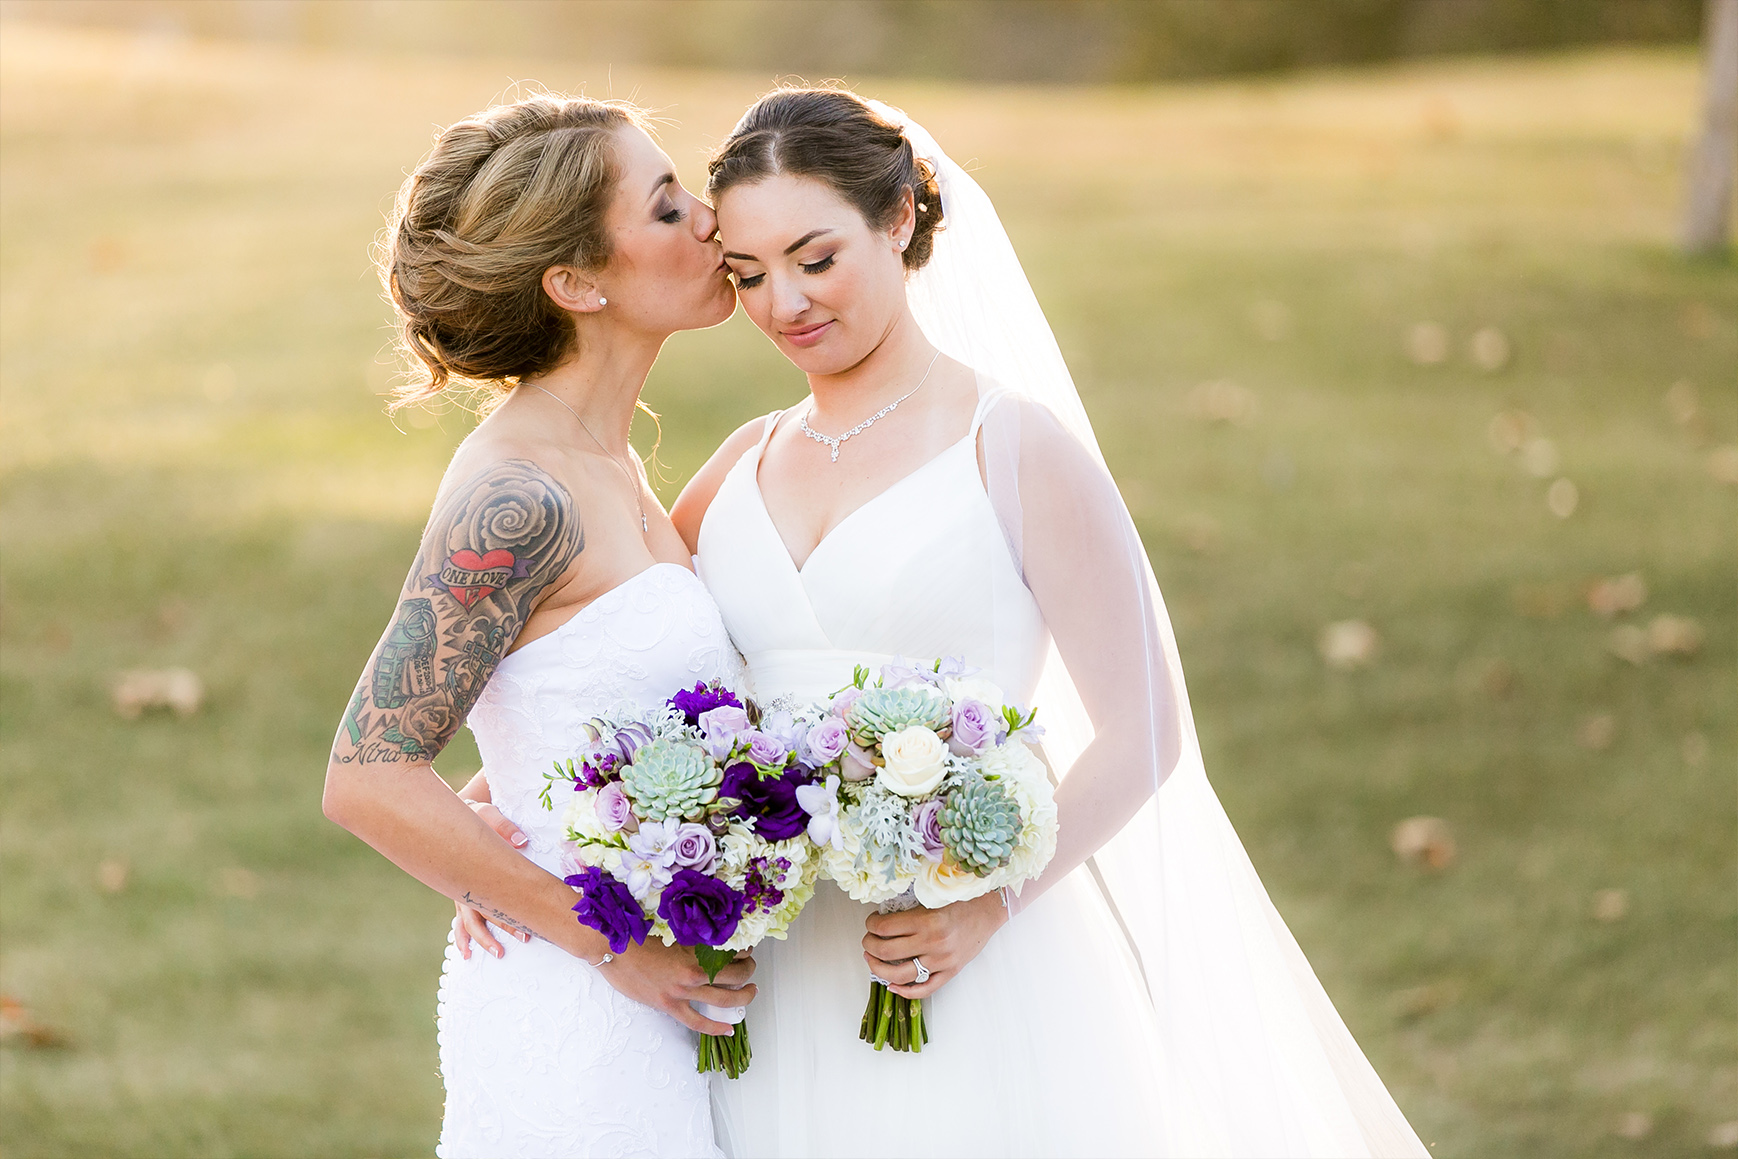 Bride and Bride - Fallbrook - Fallbrook, California - San Diego County - Wedgewood Weddings